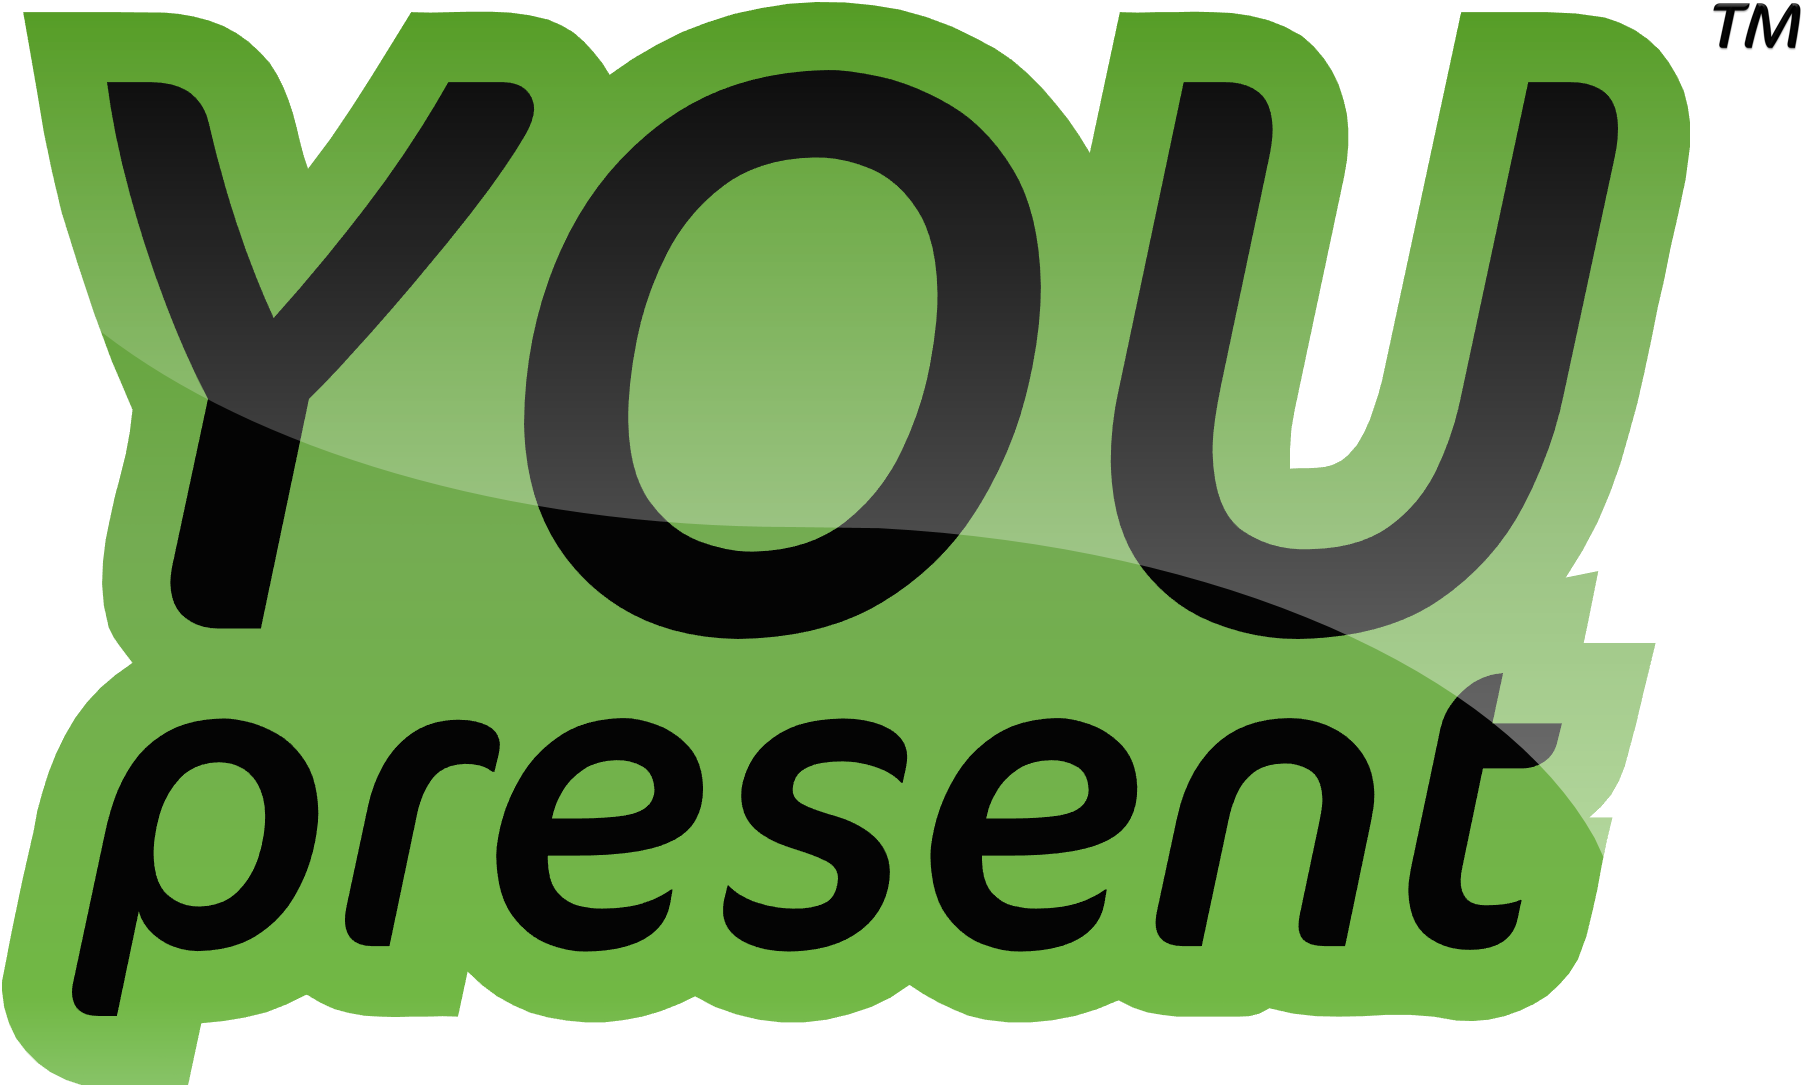 YOUpresent logo (flat black on green)